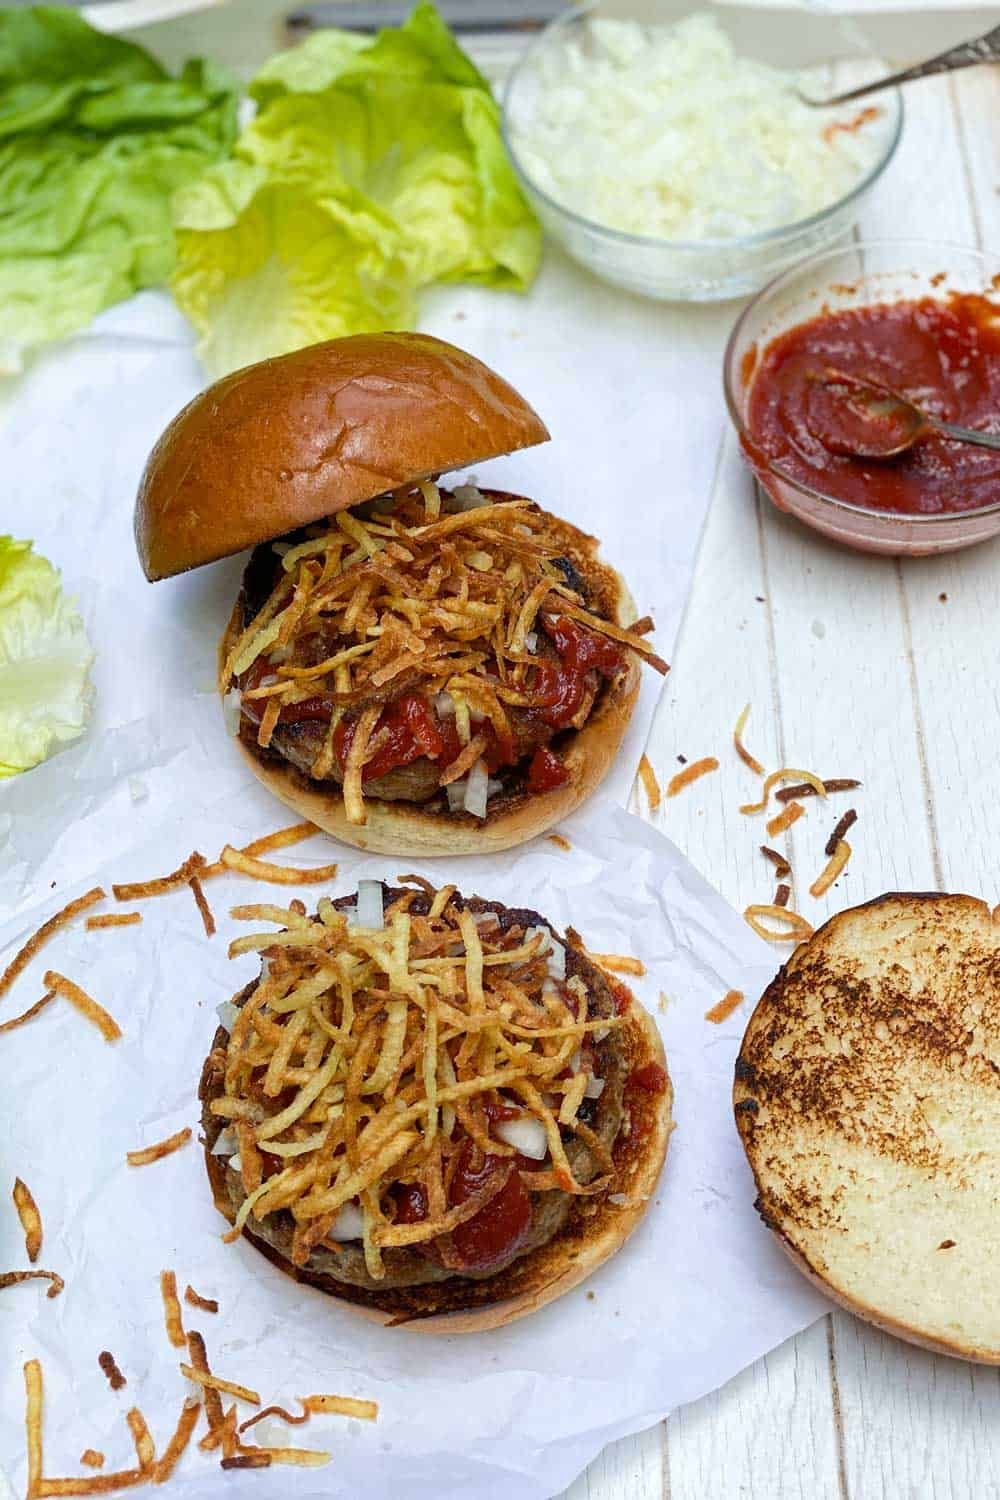 how to make the frita cuban, showing two burger patties on two buns with chopped onions and fried potatoes and special sauce on top, lettuce leaves on the side and the bun tops on the side.